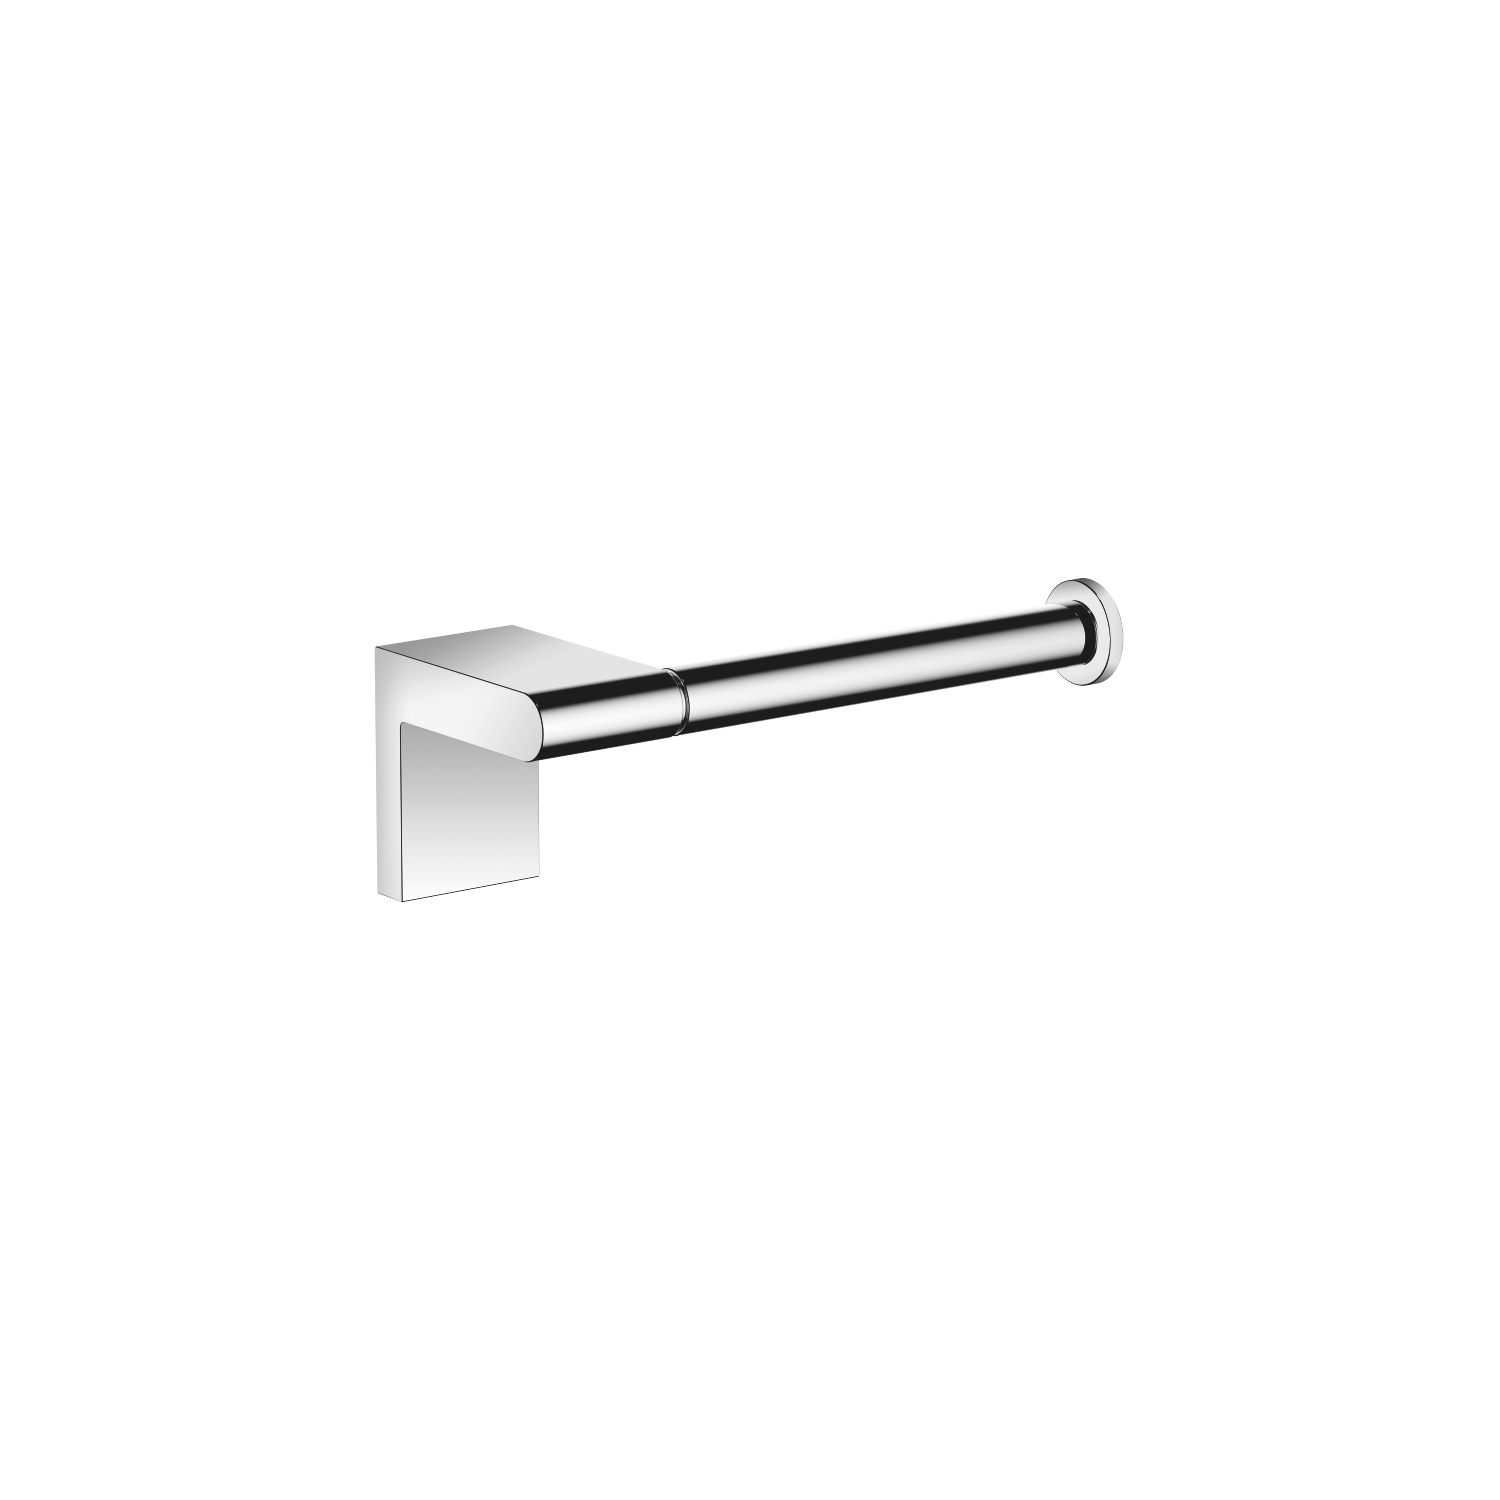 Tissue holder without cover - polished chrome